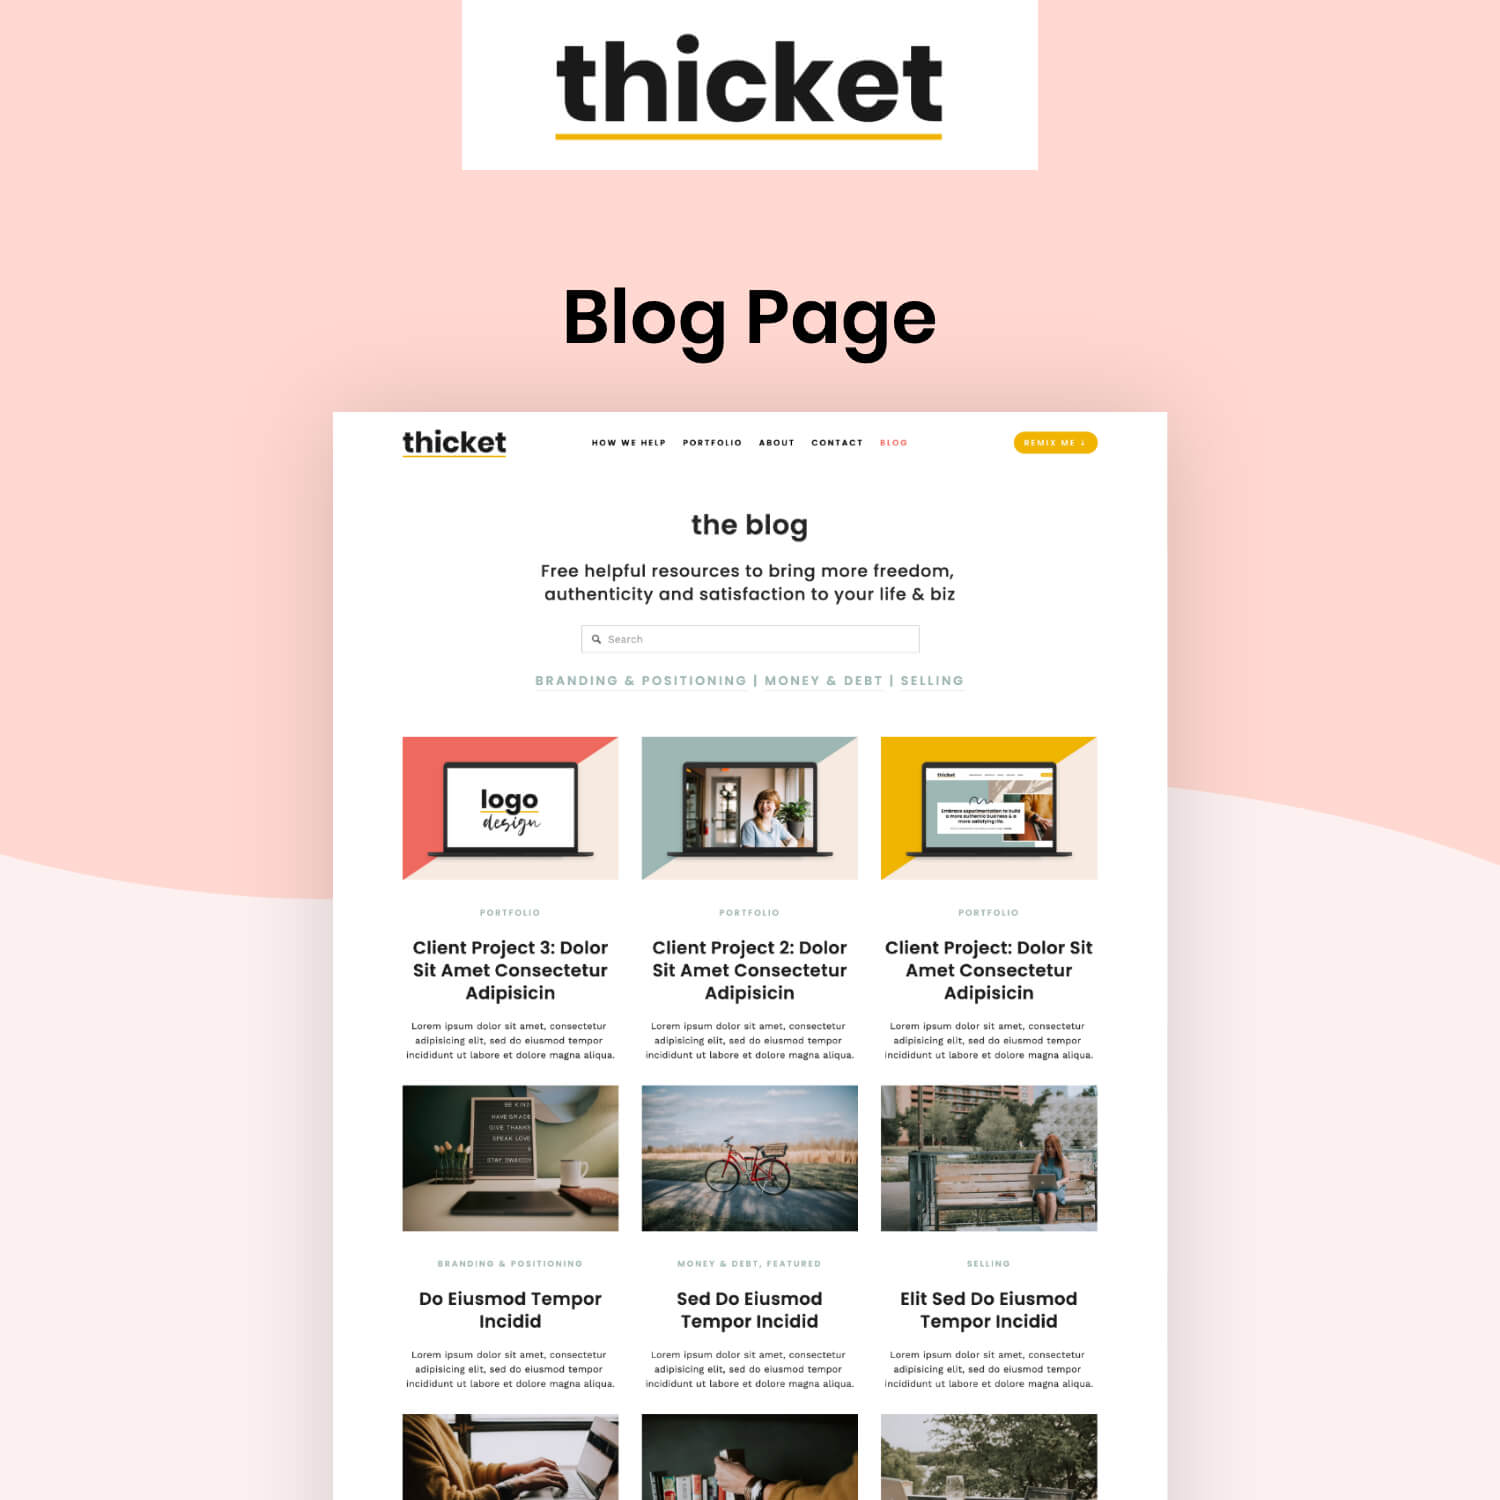 Thicket Blog Page